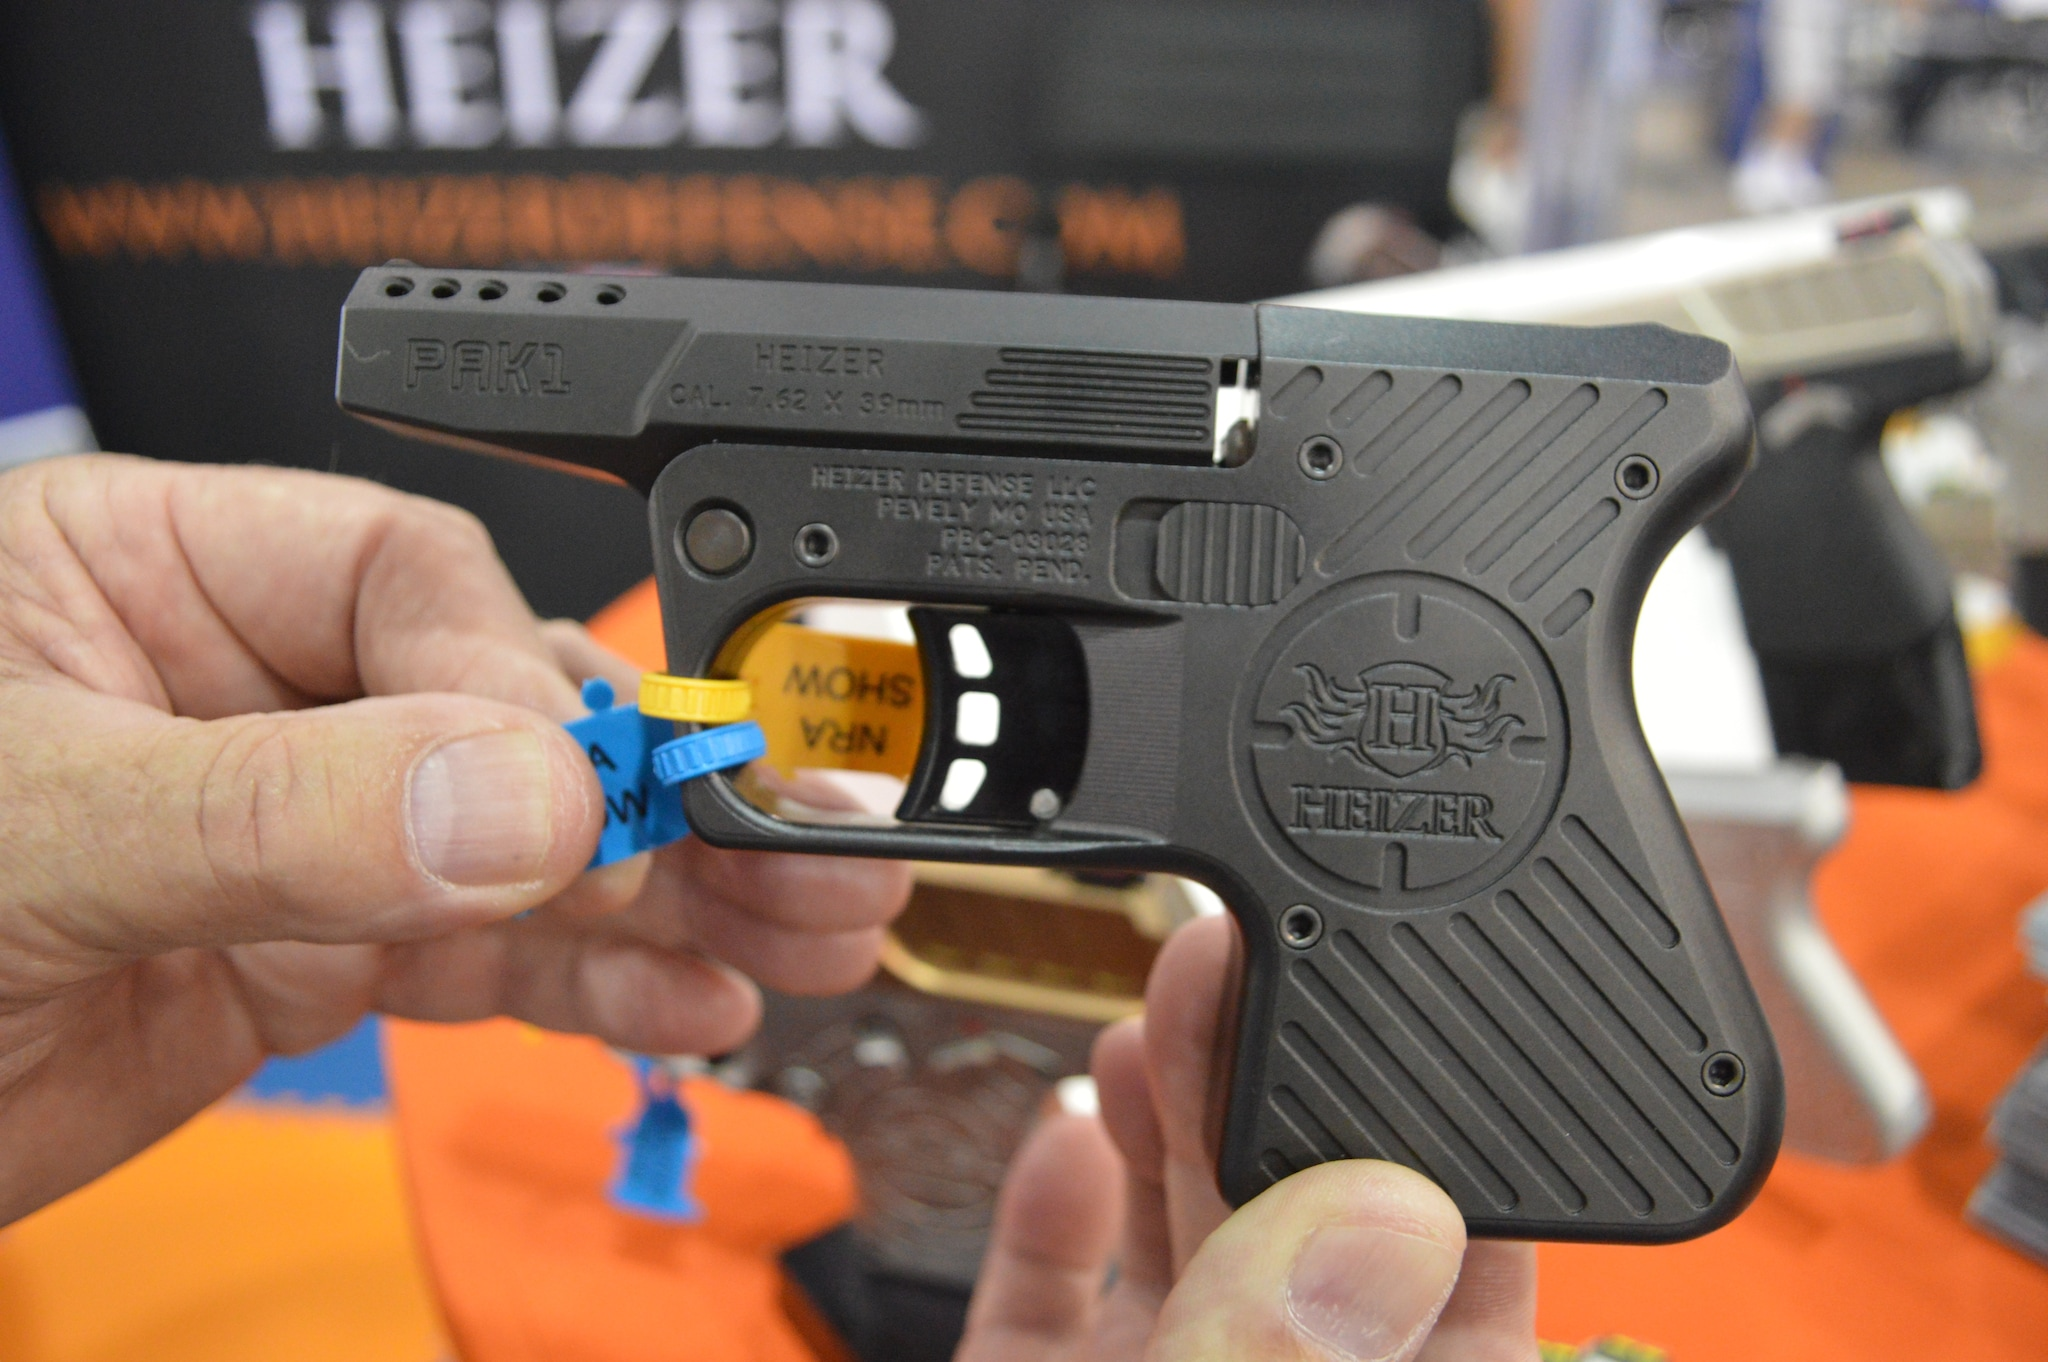 Speaking of deep concealment, Heizer built a reputation for slimline pistols built from aerospace metals. This 7.62x39 ported single shot is no exception. (Photo: Kristin Alberts/Guns.com)